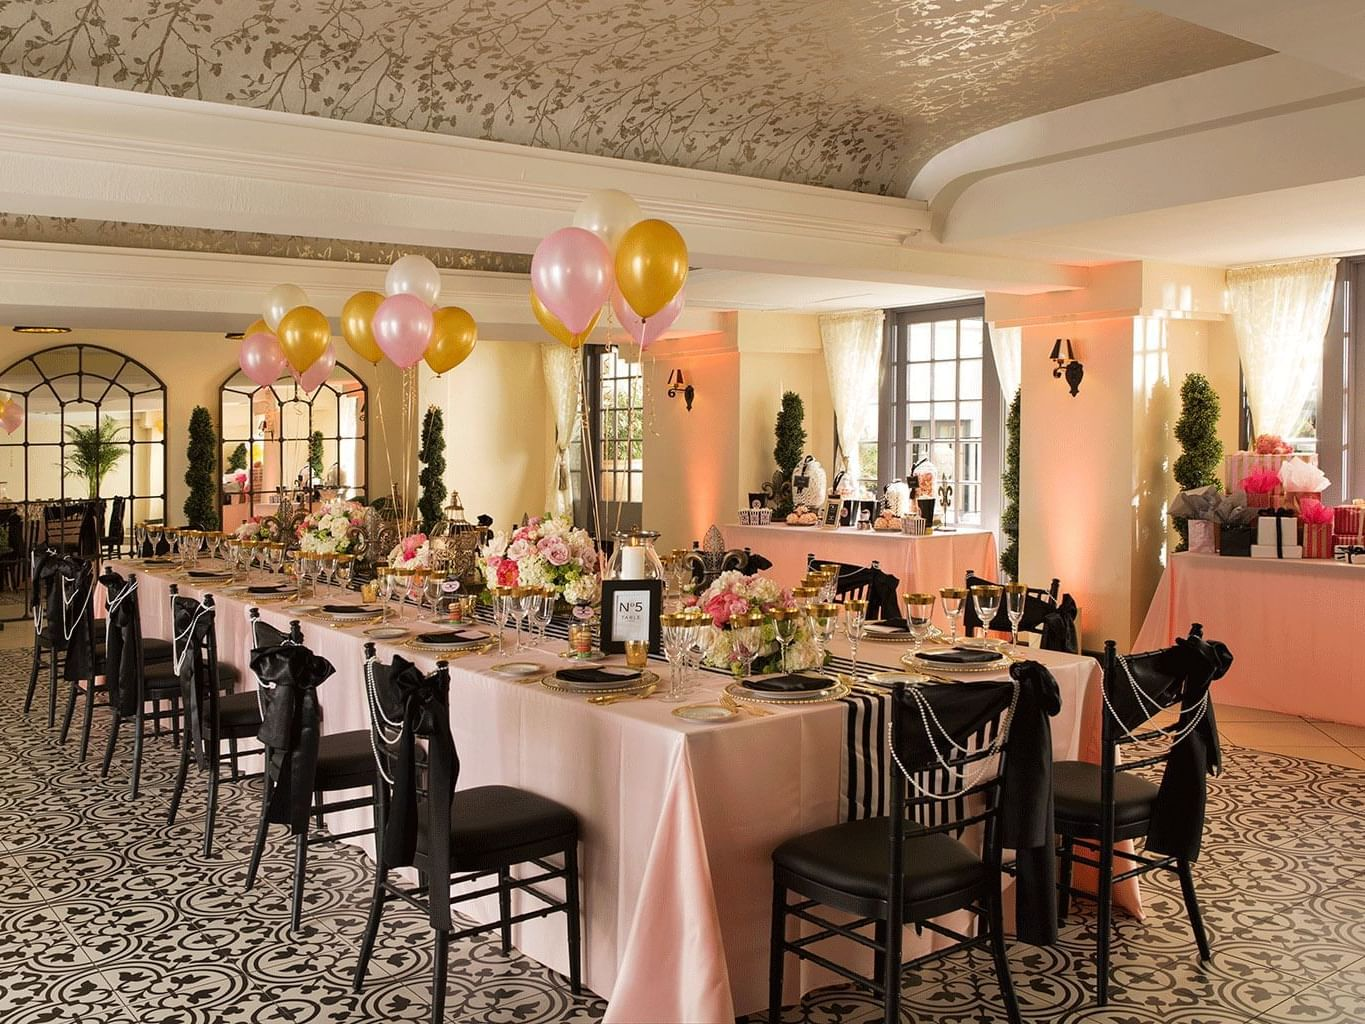 ballroom with large table with pink tablecloth and black chairs